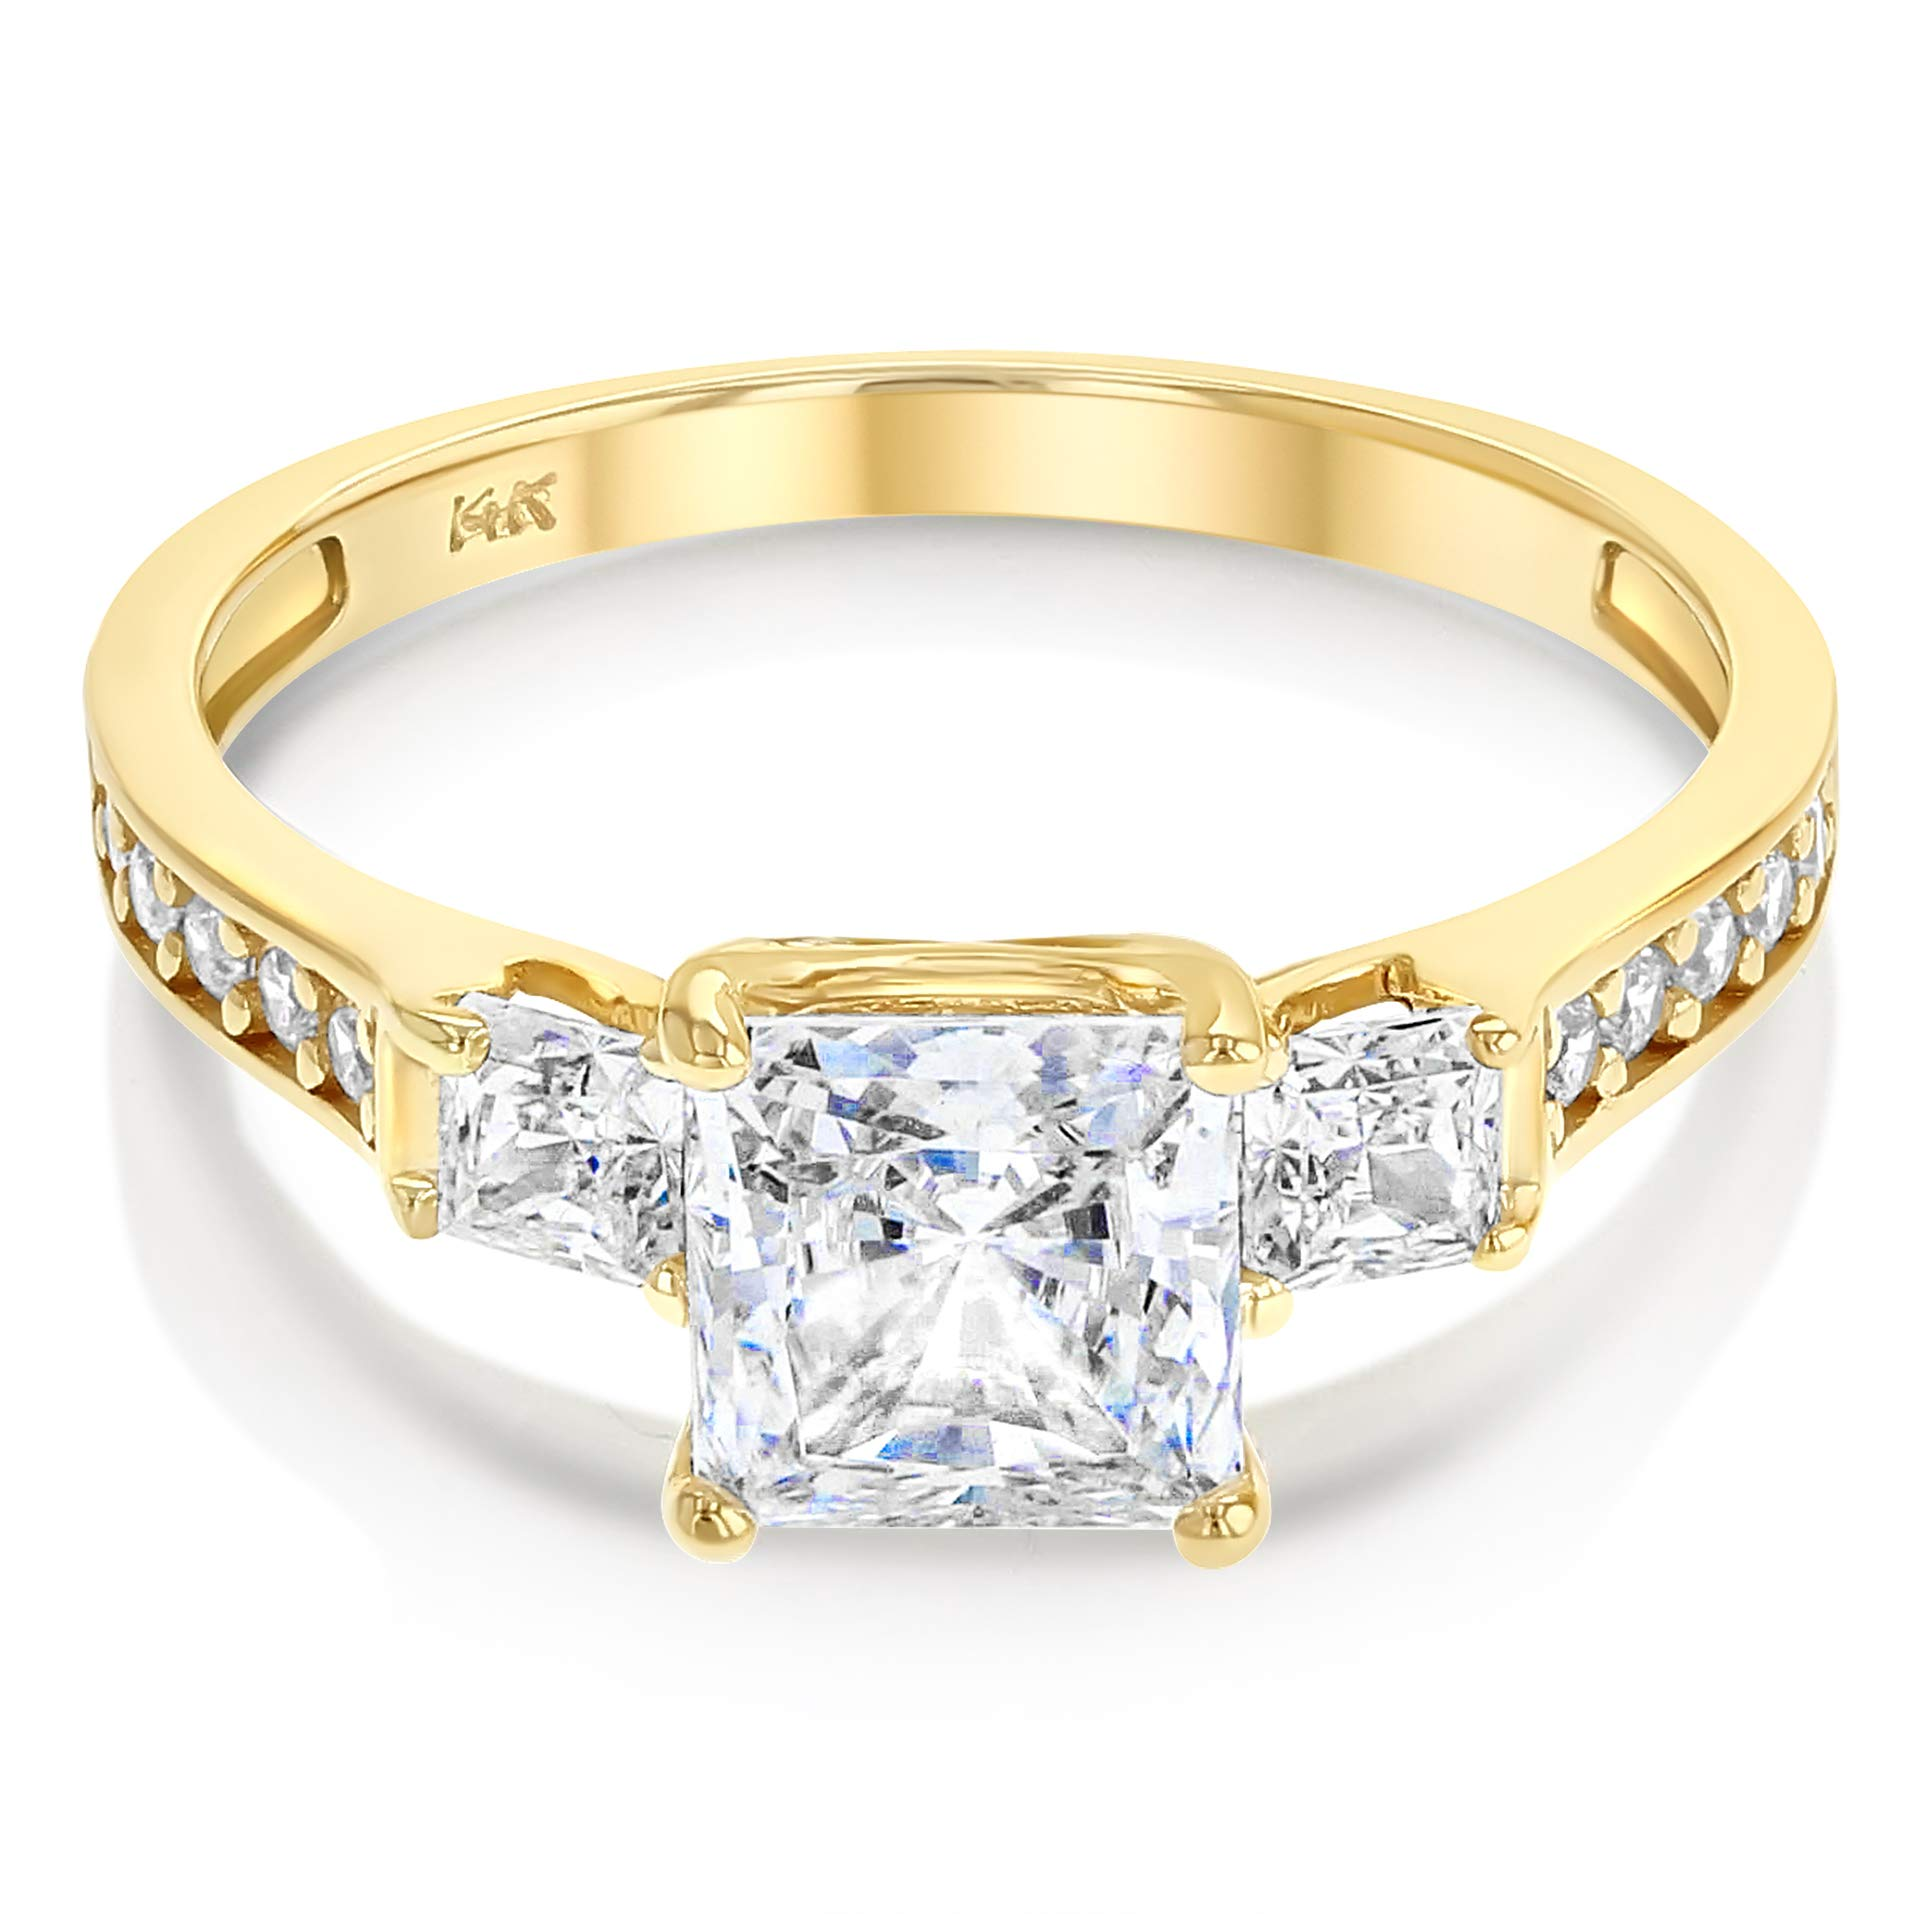 Ioka - 1.5 Ct. Cubic Zirconia CZ 3 Stone Princess Cut Engagement Ring Solid 14K Yellow Gold With Stones in Band - Size 6.5 - Size 6.5